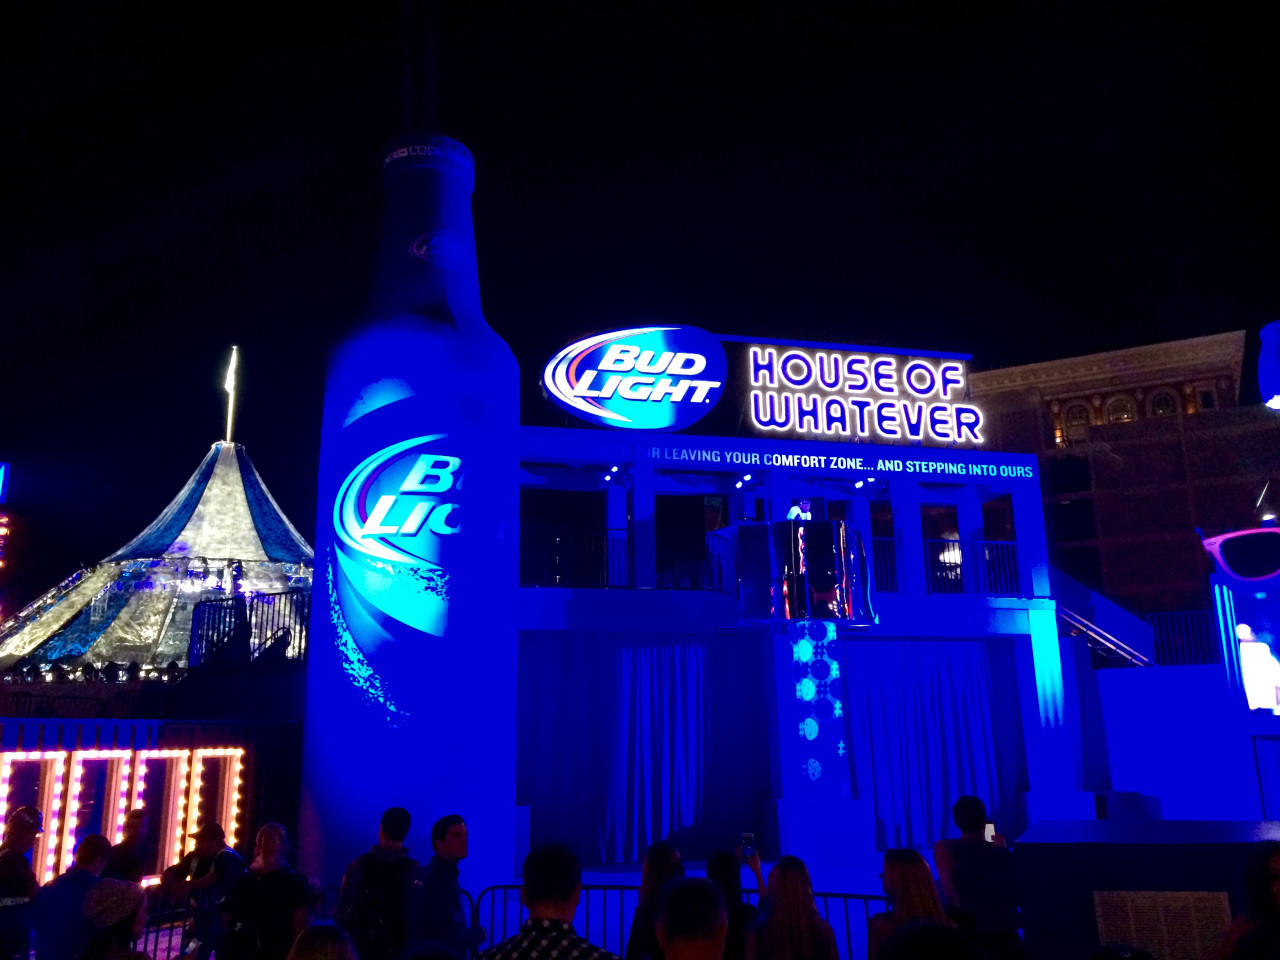 Bud-light-house-of-whatever-super-bowl-2015